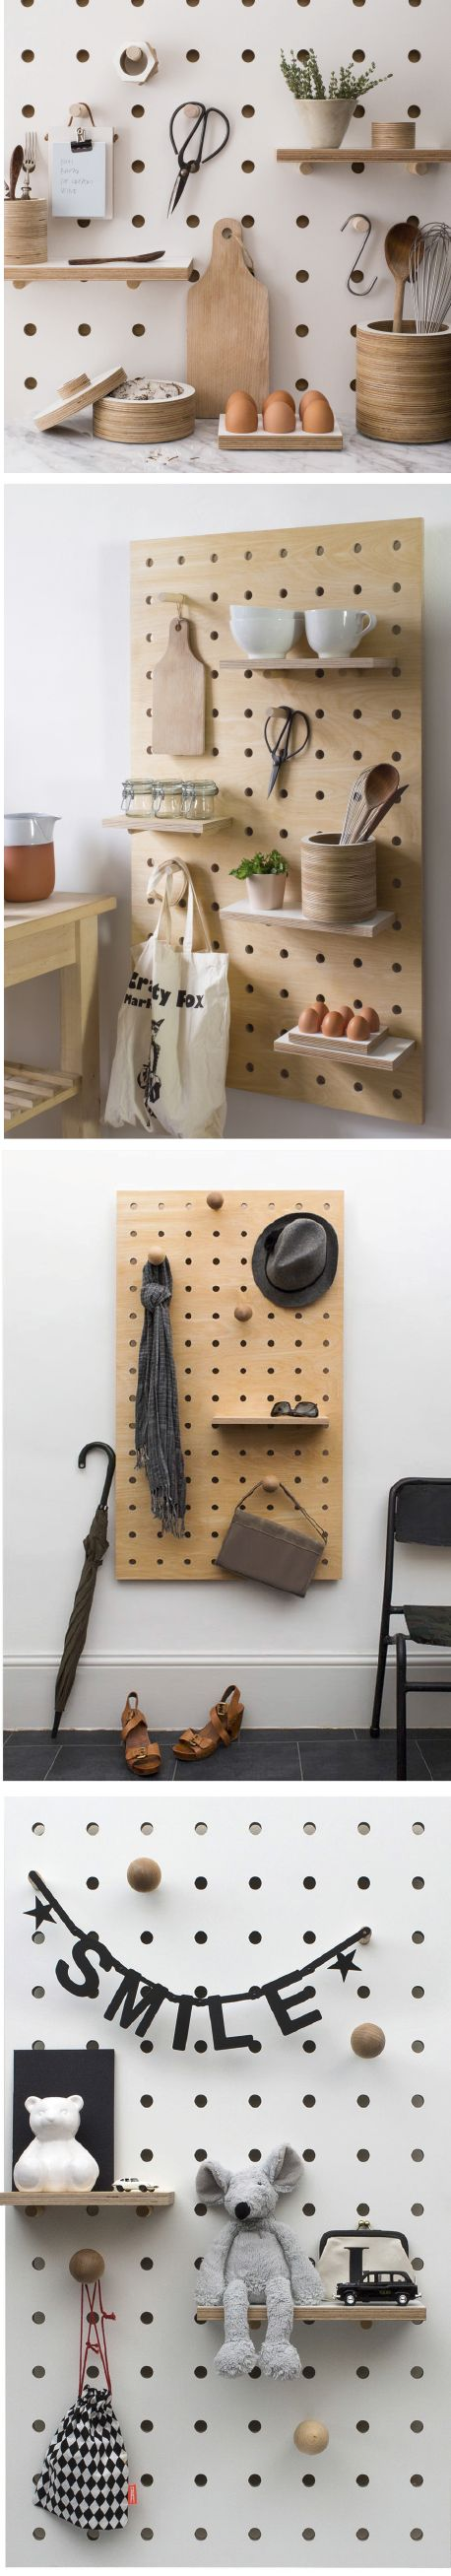 Peg board storage by Kreisdesign